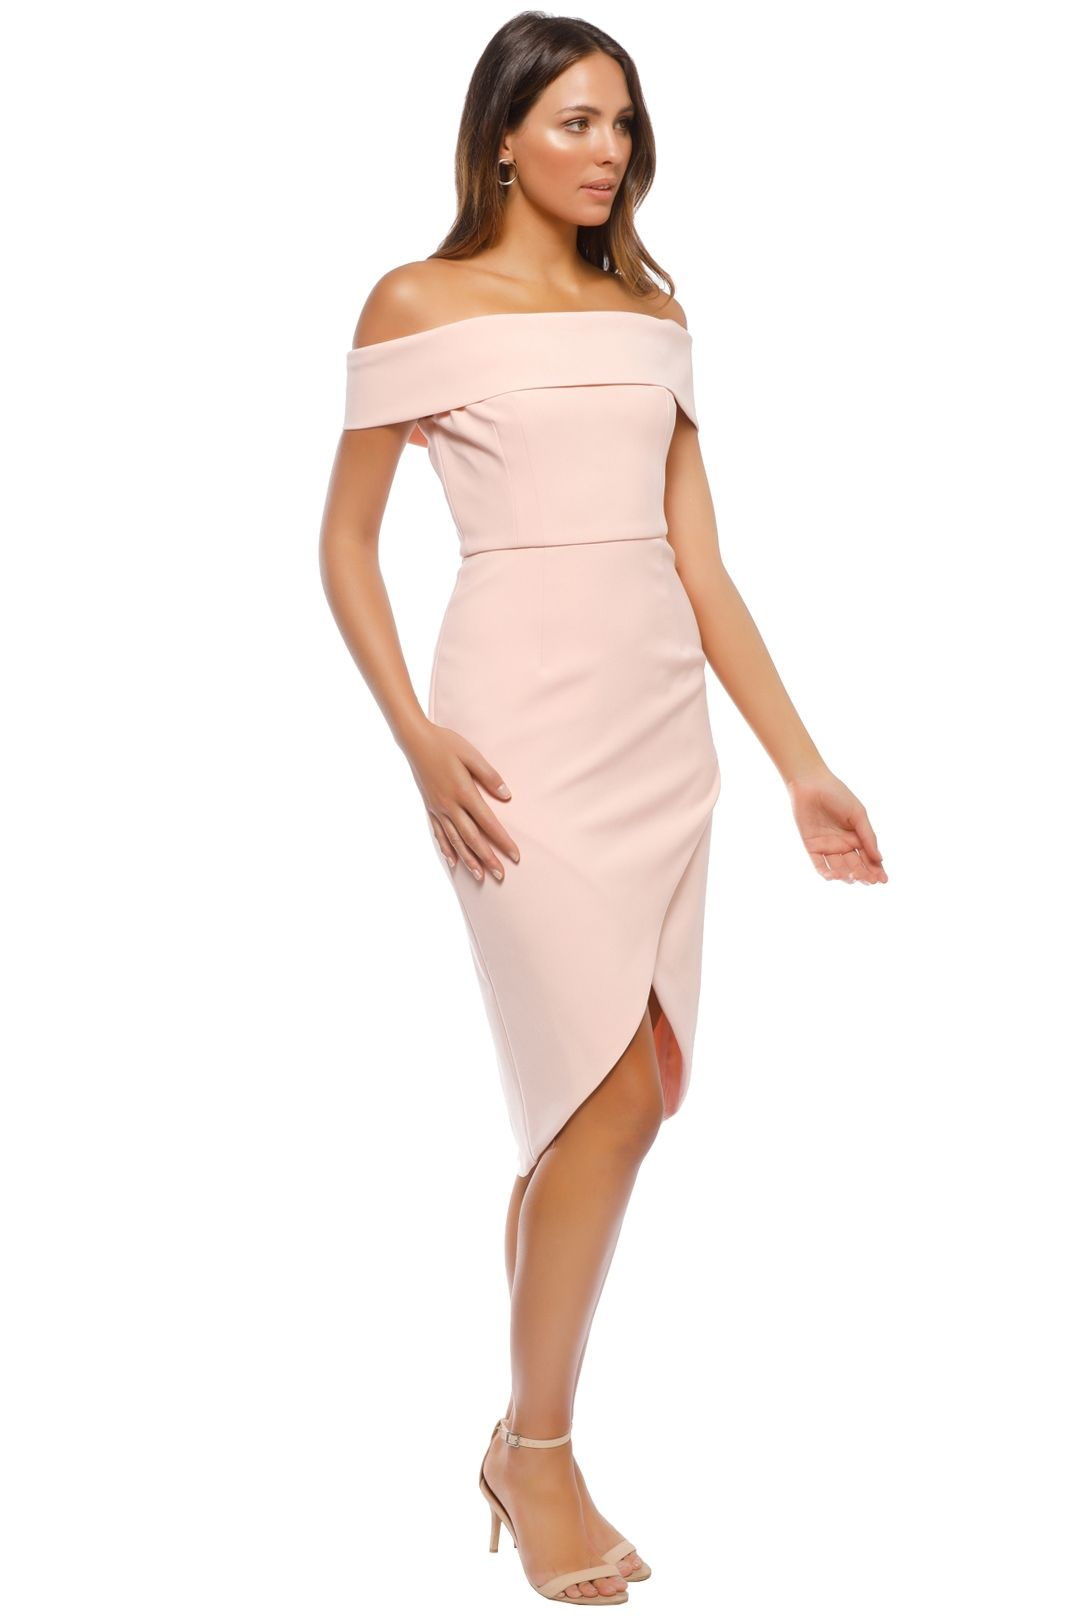 Unspoken - Jamai Short Dress - Pale Blush - Side